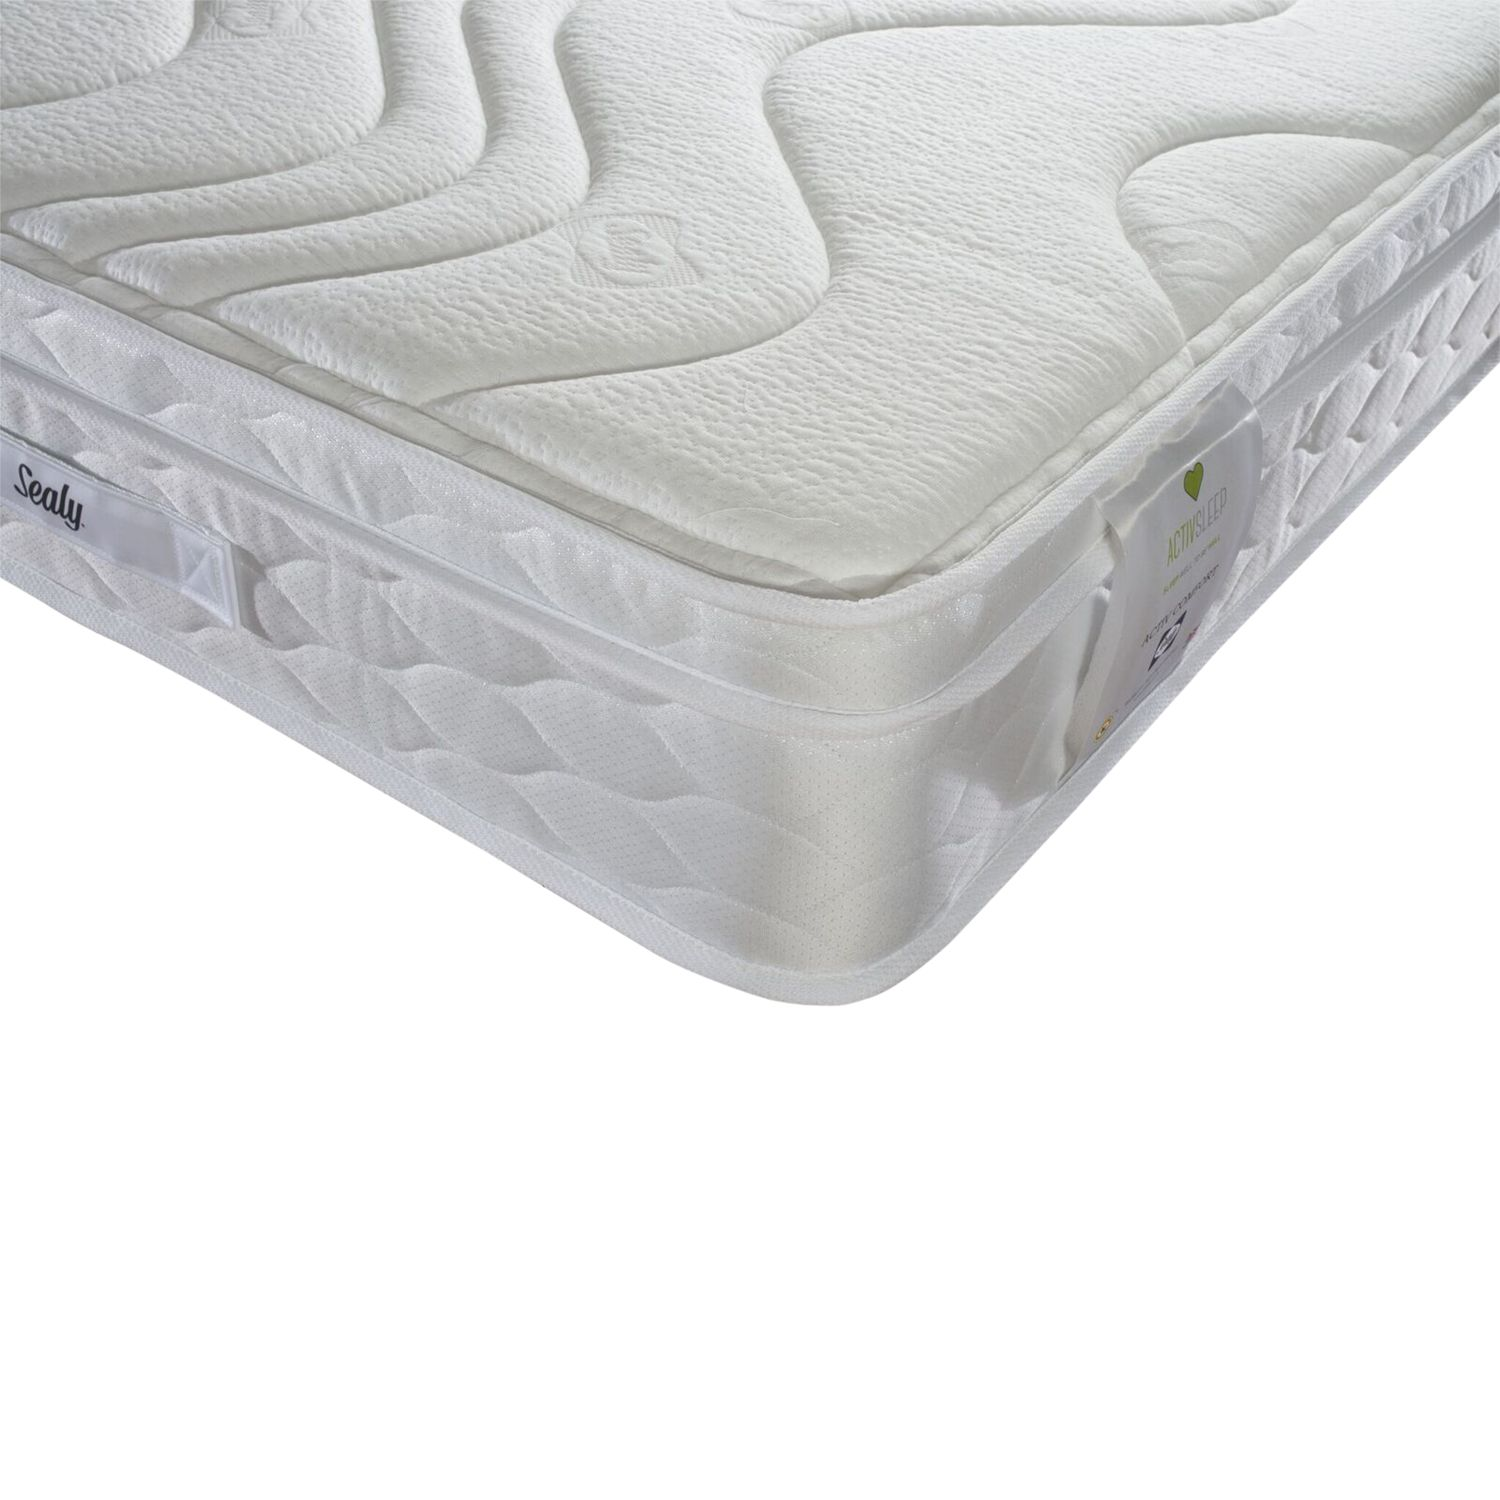 Sealy Sealy Activsleep Comfort Mattress, Medium, Single